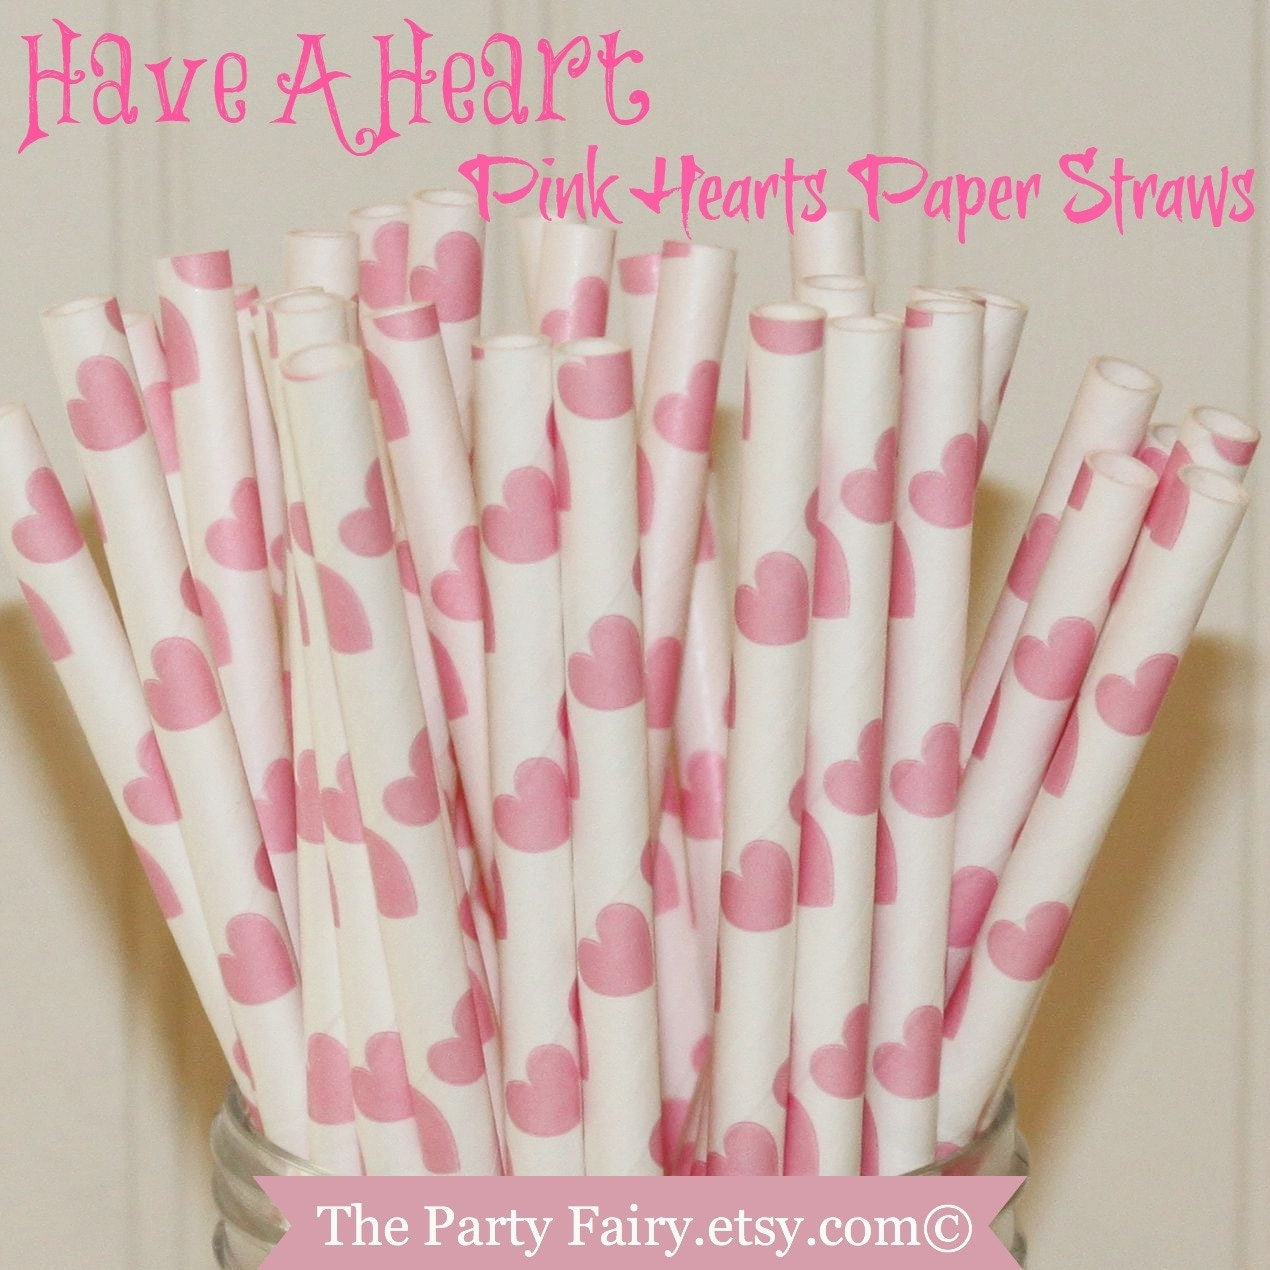 heart on a paper straw paper straws 25 pink hearts paper straws straws 6703